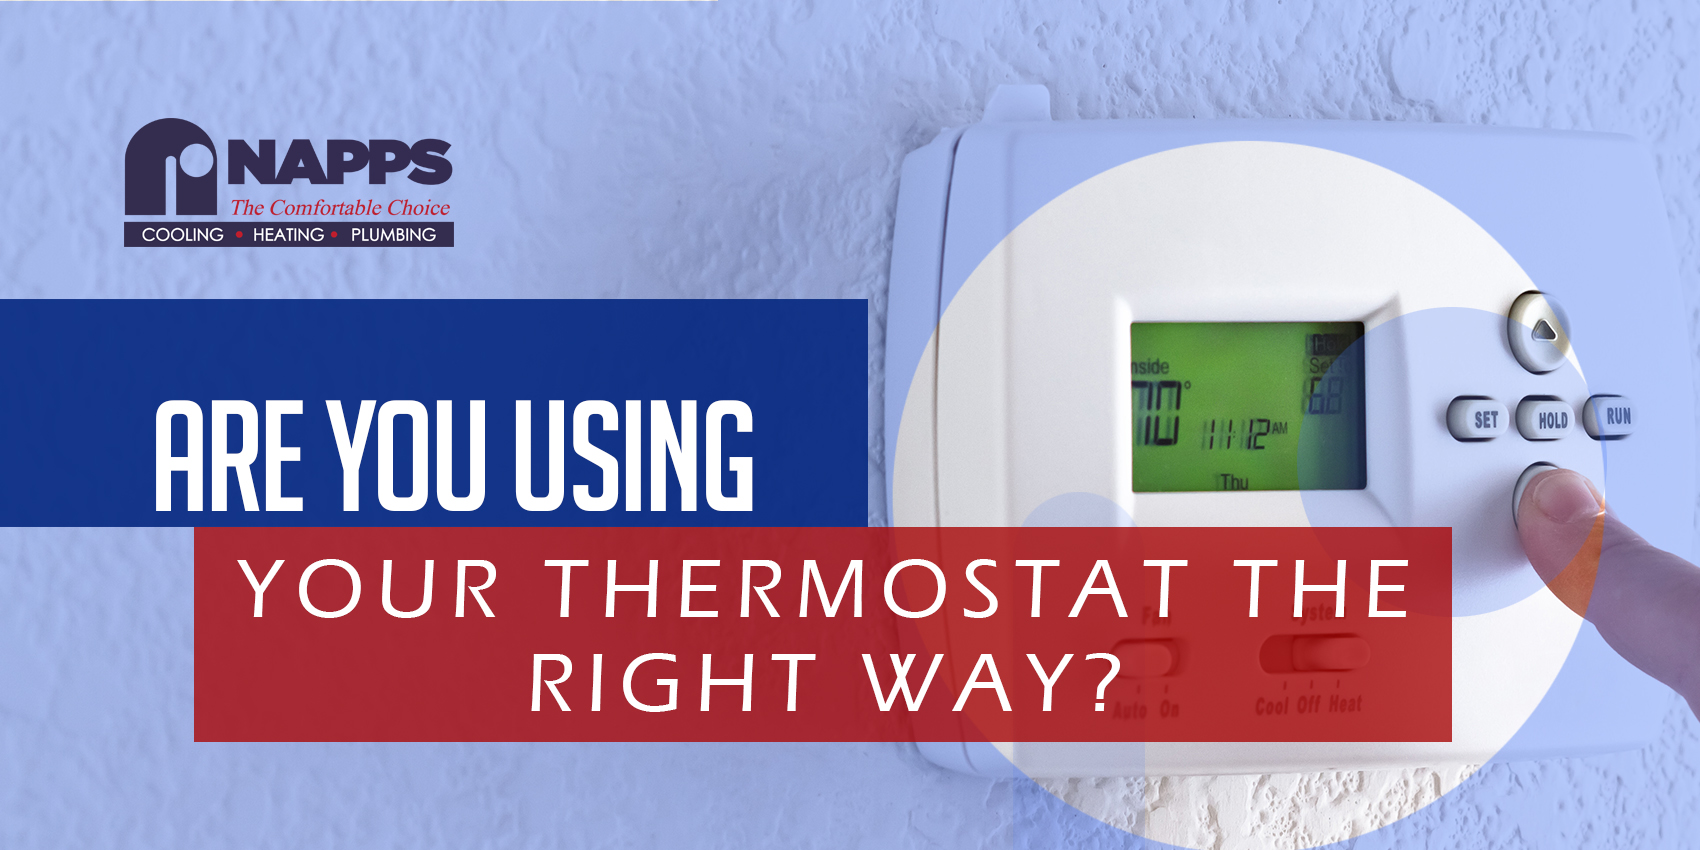 Are You Using Your Thermostat the Right Way?